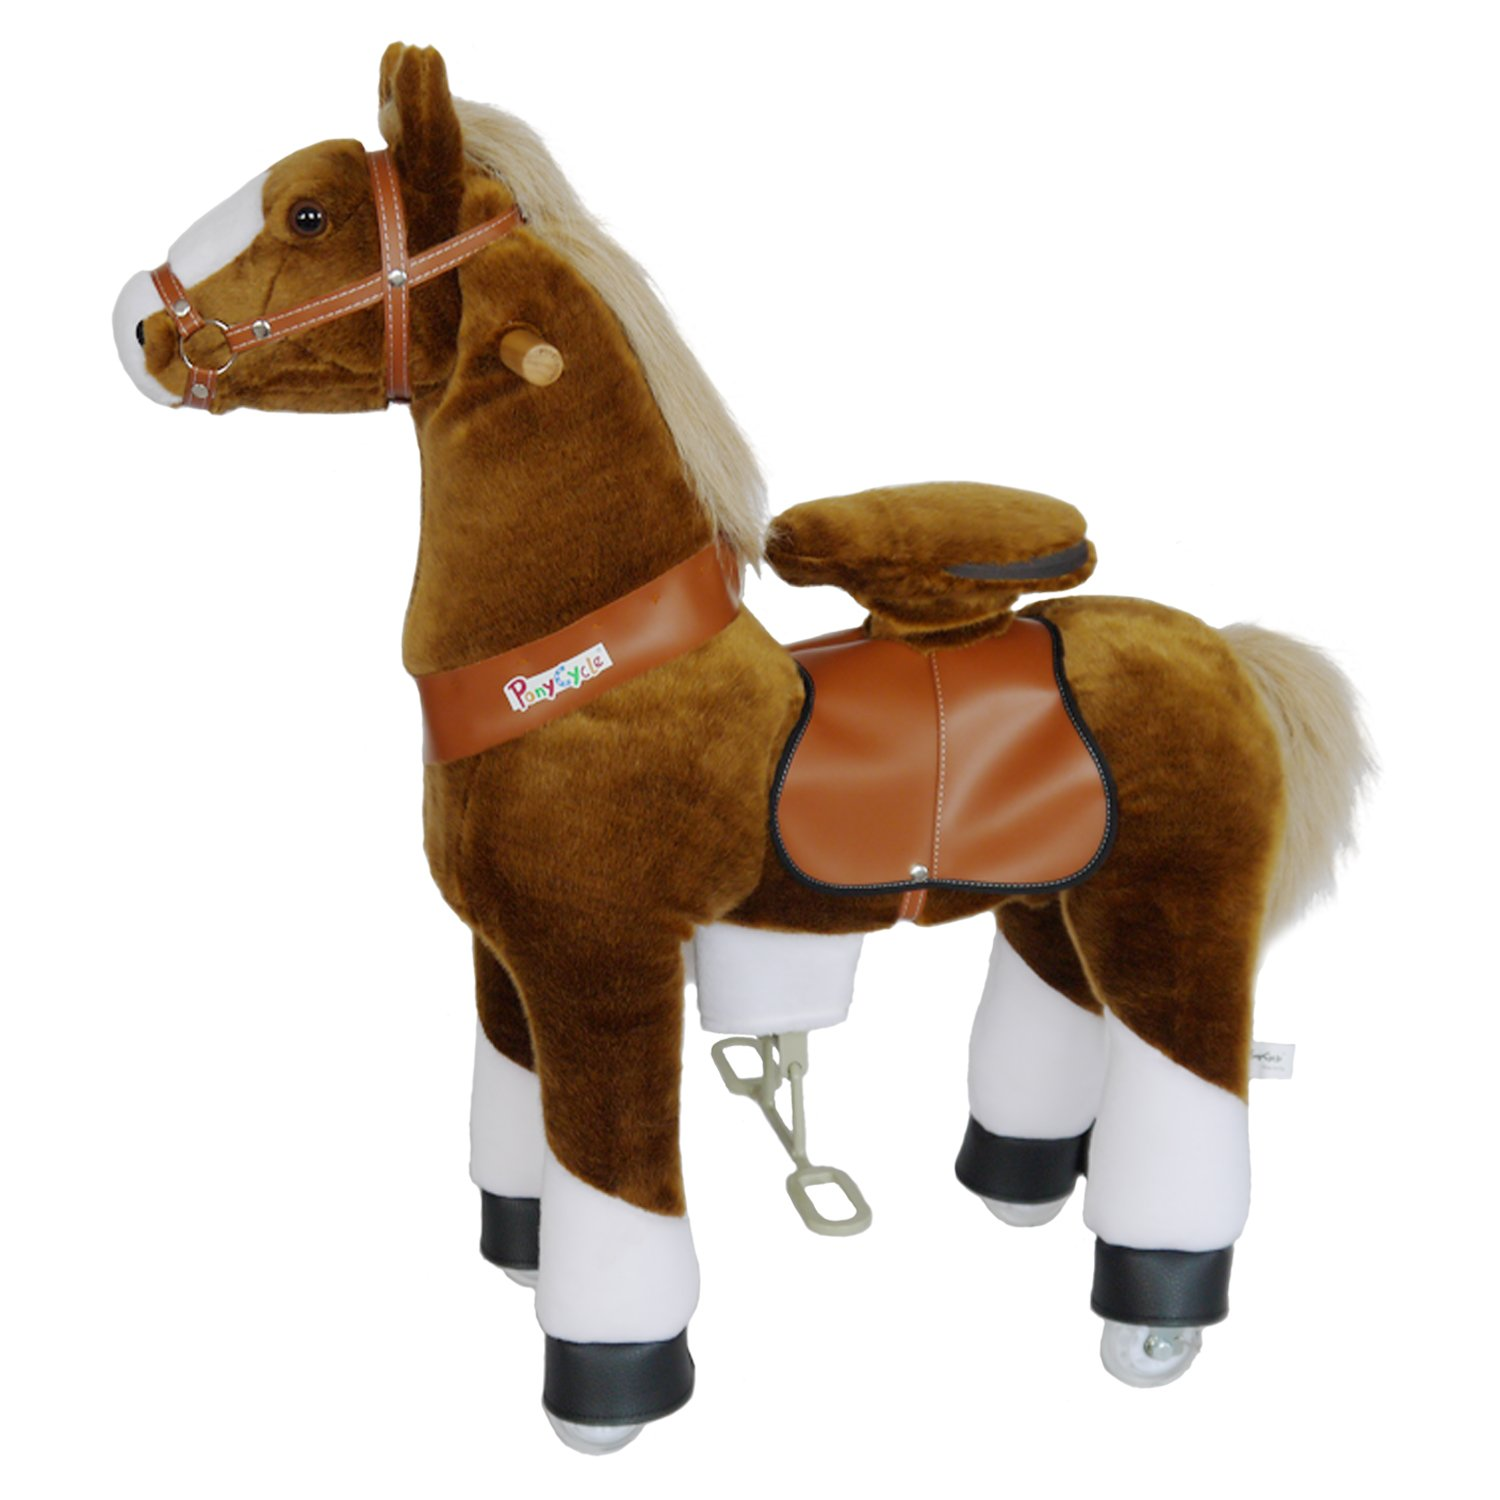 PonyCycle Official Ride-On Horse No Battery No Electricity Mechanical Pony Brown with White Hoof Giddy up Pony Plush Walking Animal for Age 4-9 Years Medium Size - N4151 by PonyCycle (Image #3)